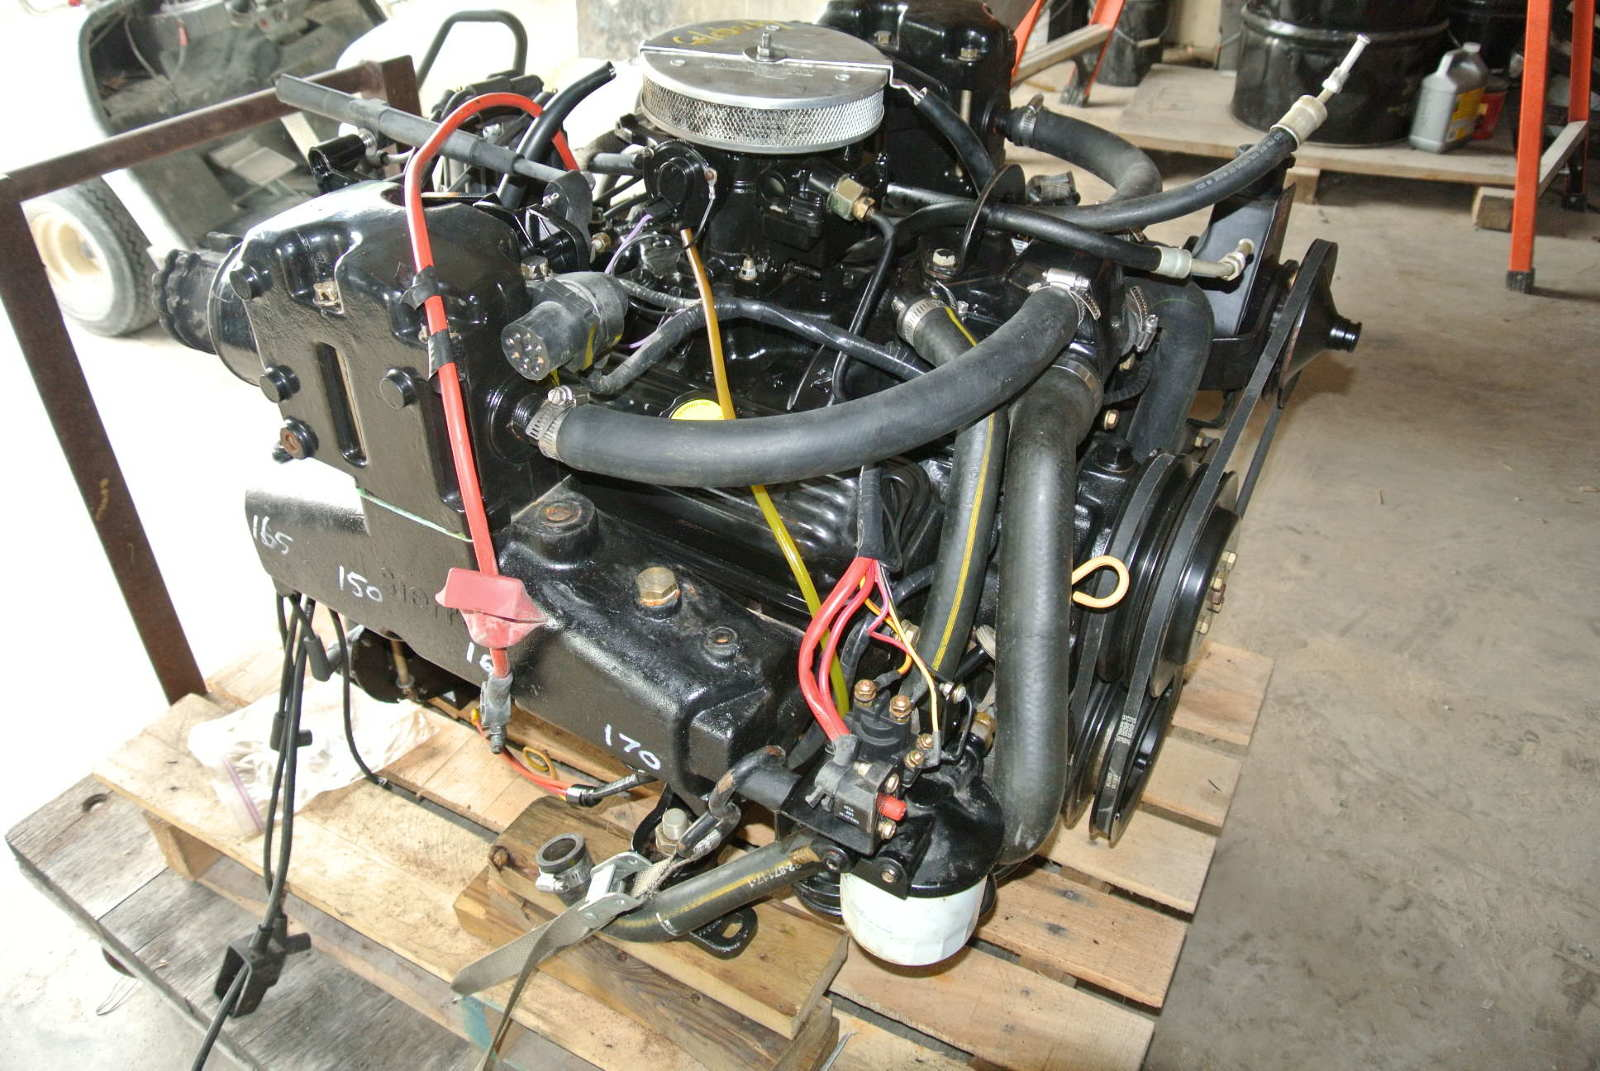 5364 mercruiser 50 engine v8 chevy 305 motor complete plug n go mercruiser 5 0 engine v8 chevy 305 motor complete plug n go  at gsmportal.co